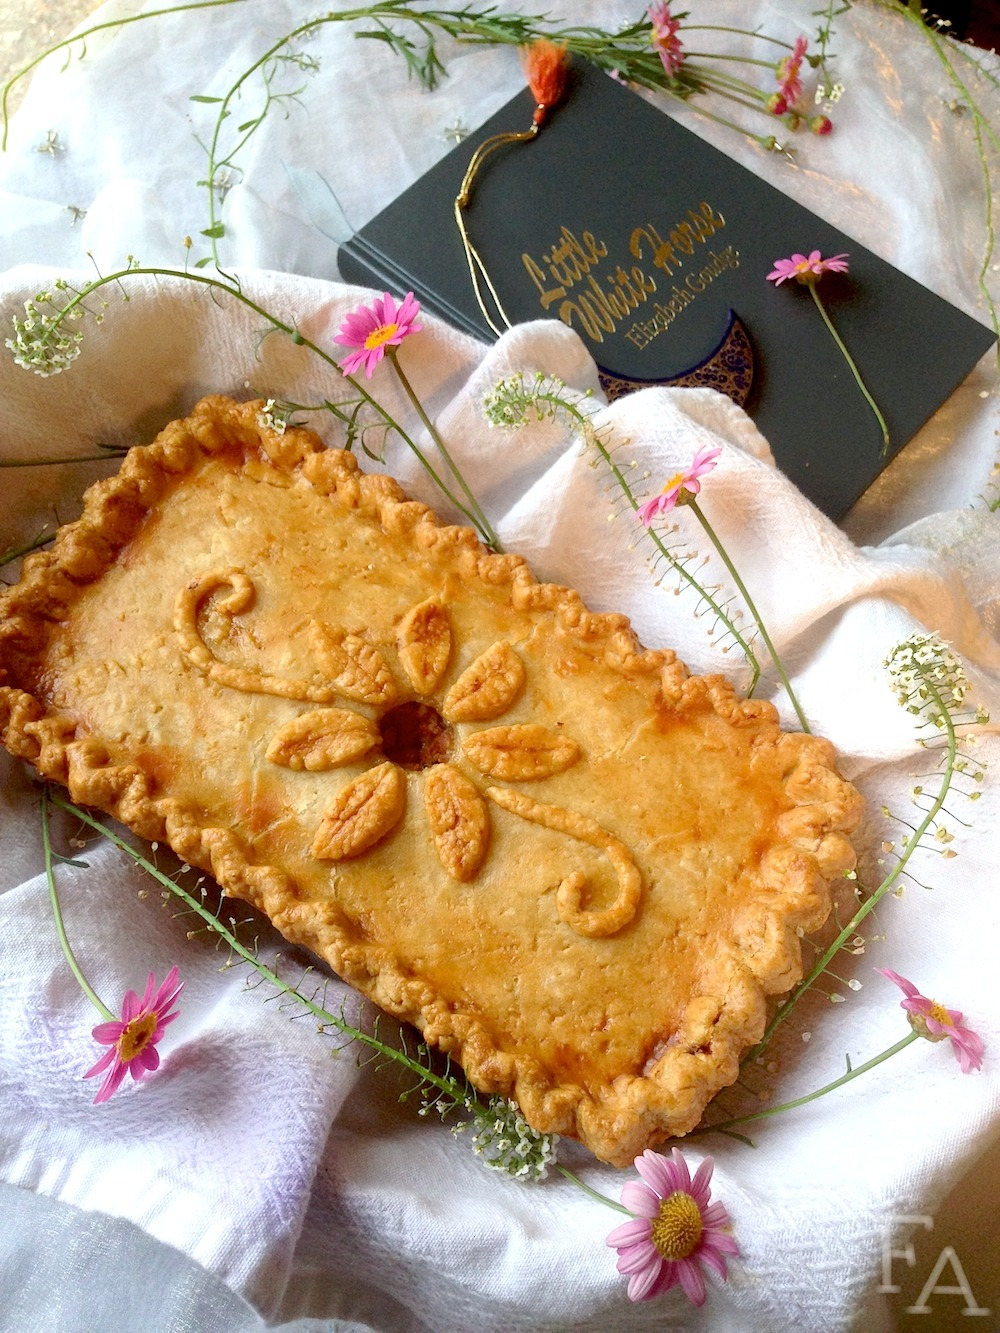 Image courtesy: http://www.fiction-food.com/2014/03/veal-ham-pie-from-little-white-horse.html